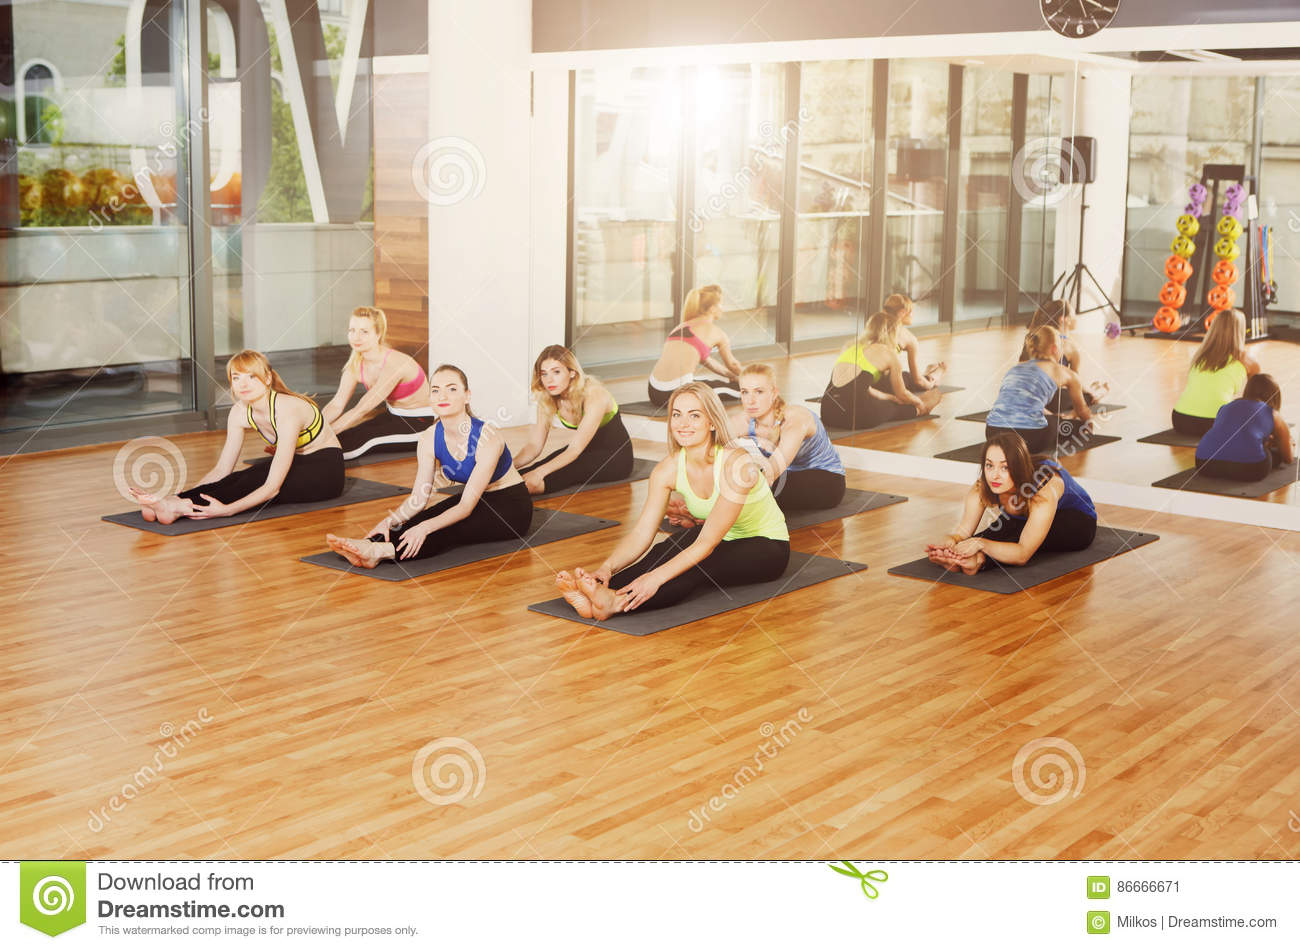 Group of young women in yoga class, stretching